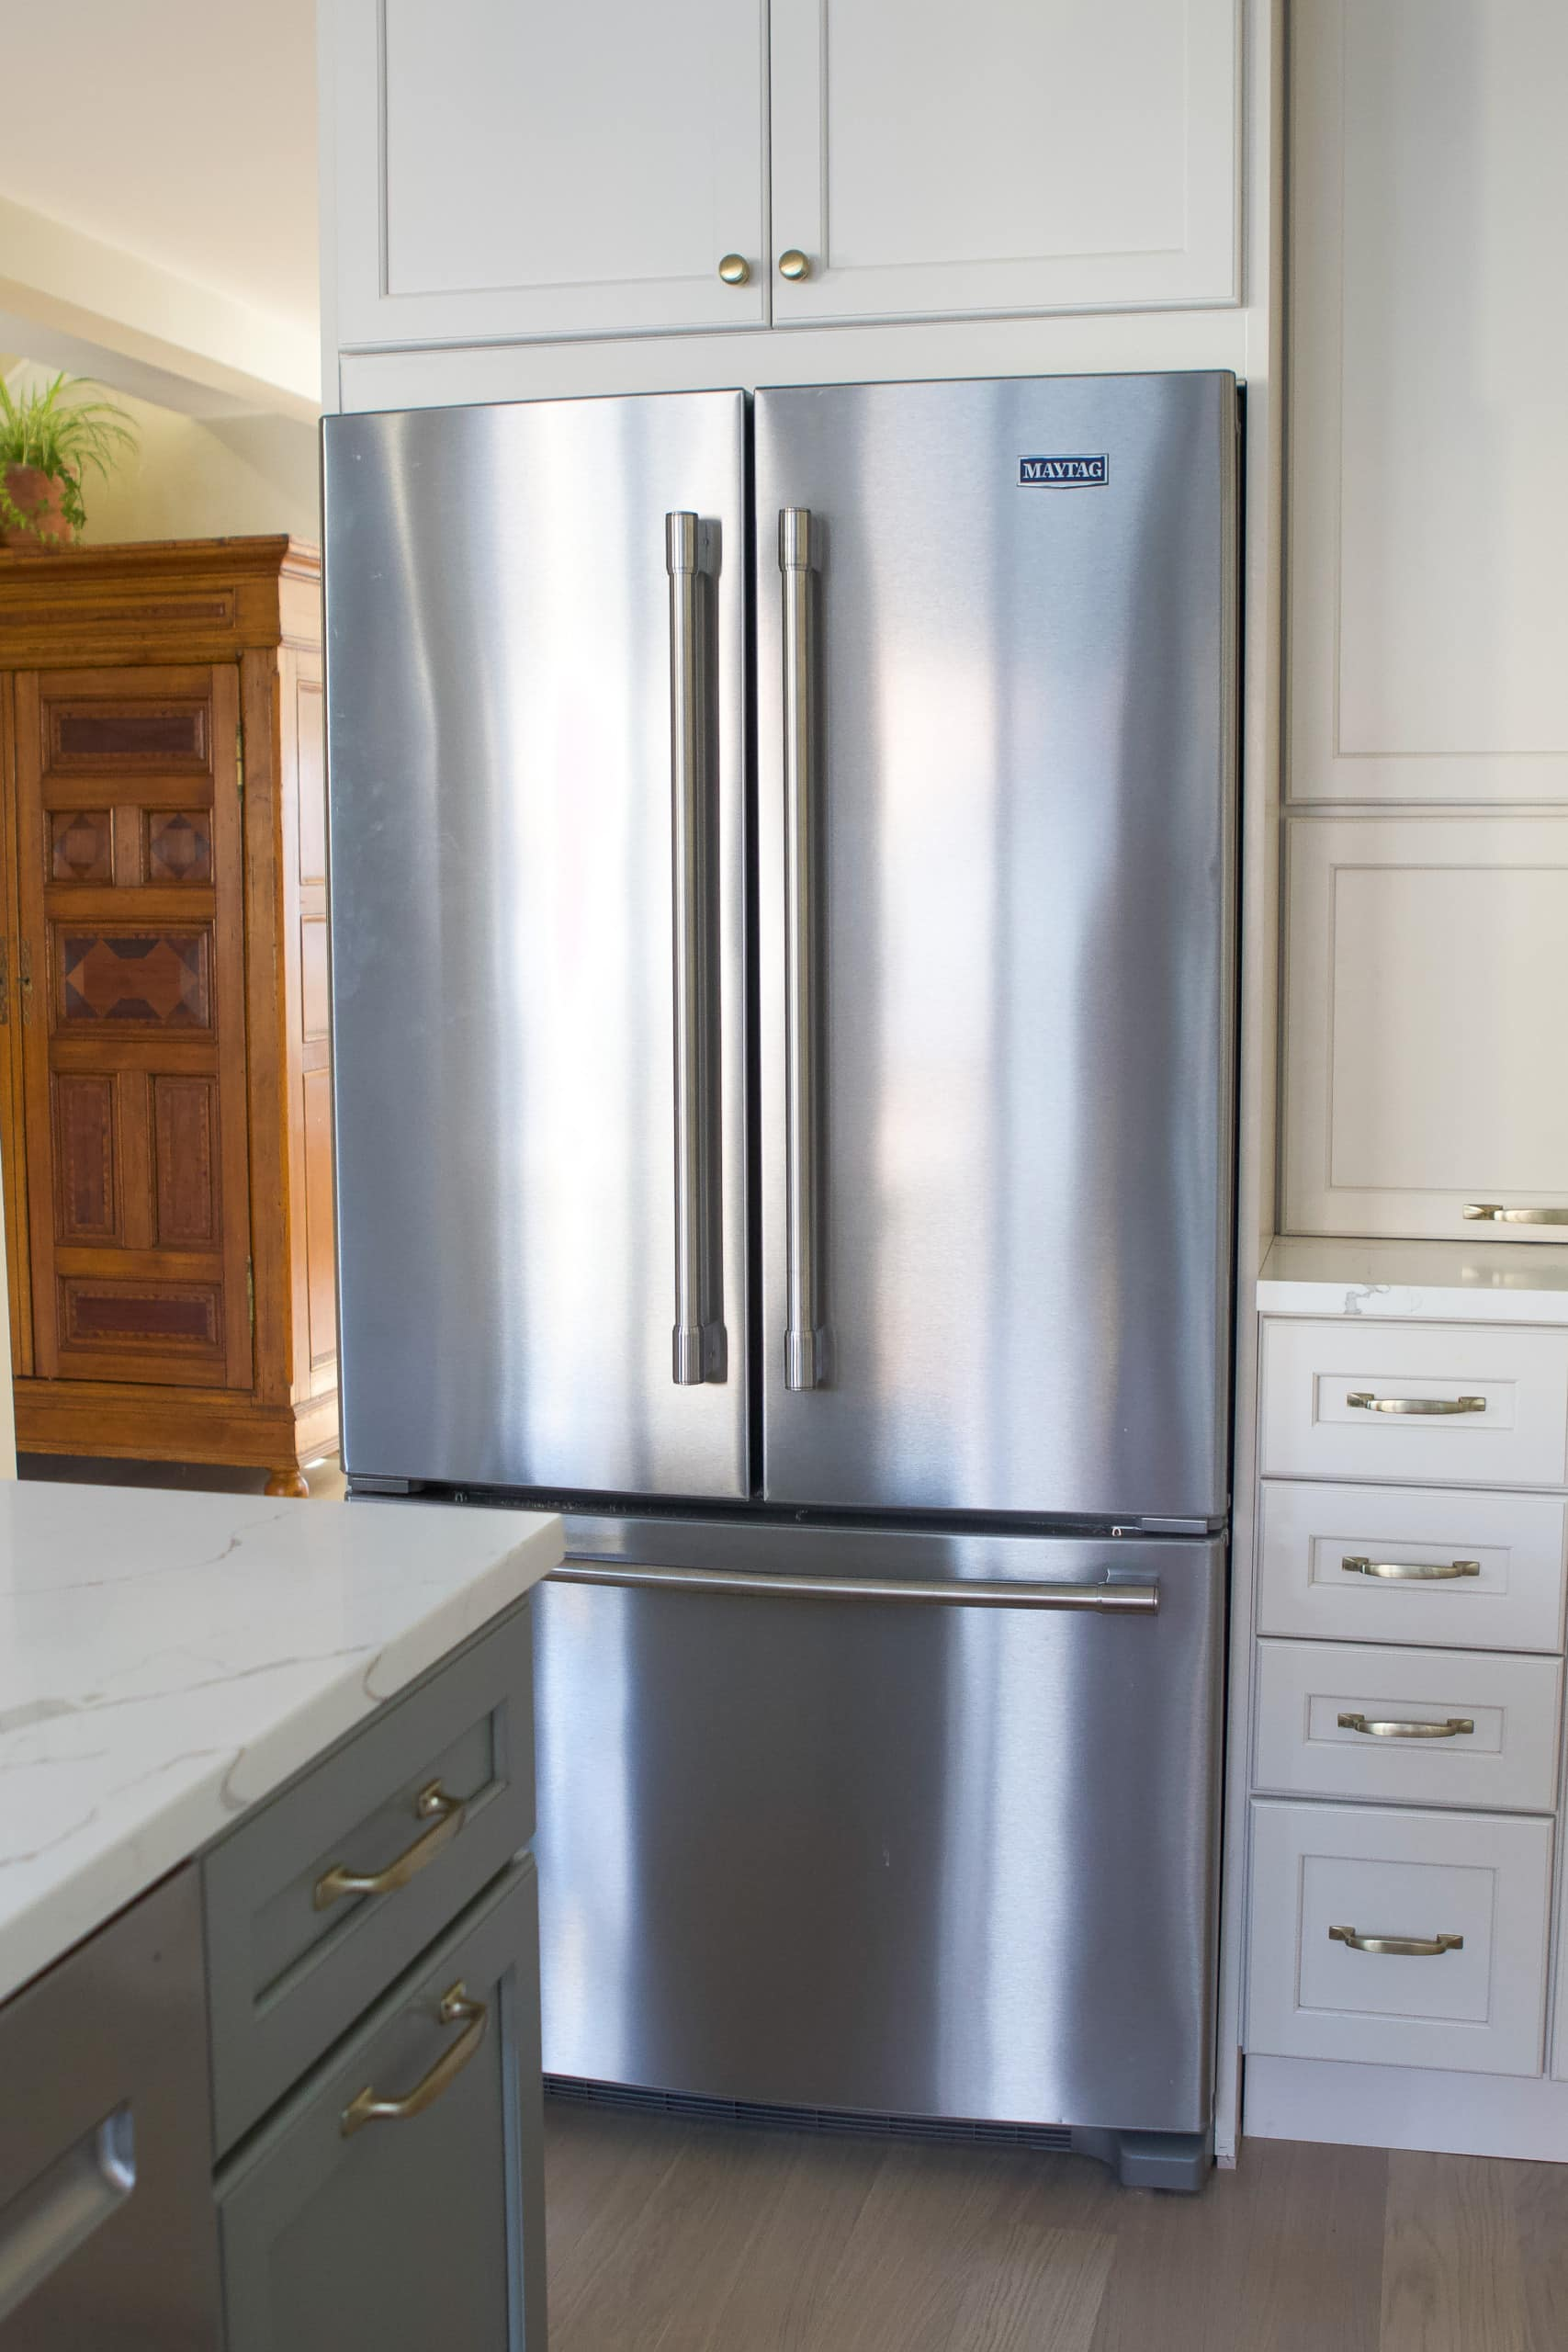 Our new kitchen appliances have fingerprint resistant stainless steel